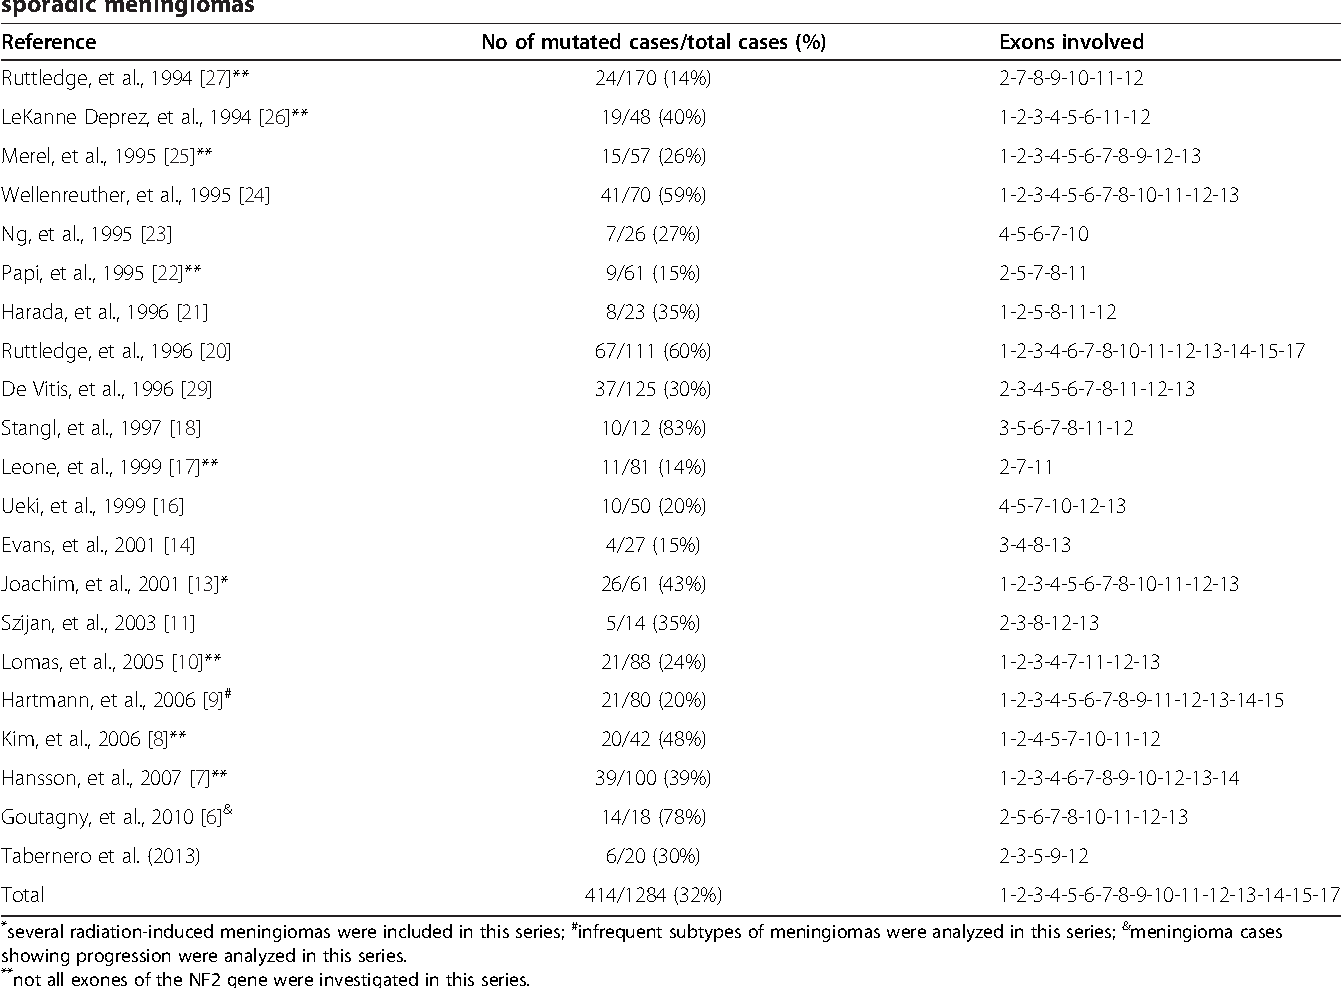 Table 3 Frequency of NF2-gene mutations in our patients and sporadic meningiomas